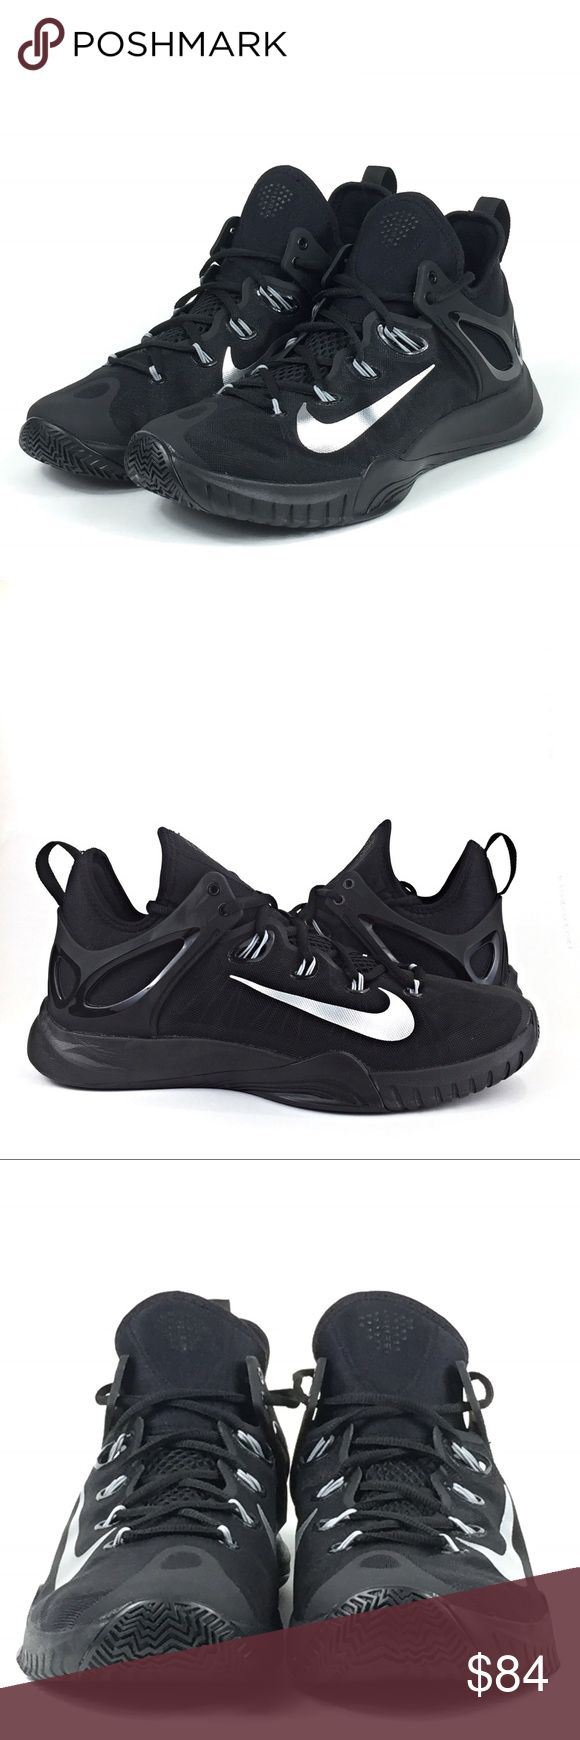 Nike Zoom HyperRev 2015 Basketball Sneaker NWOB Men's Nike Zoom HyperRev  Basketball Sneakers, Black/Metallic Silver, Men's US 9.5, Style# 705370-001.